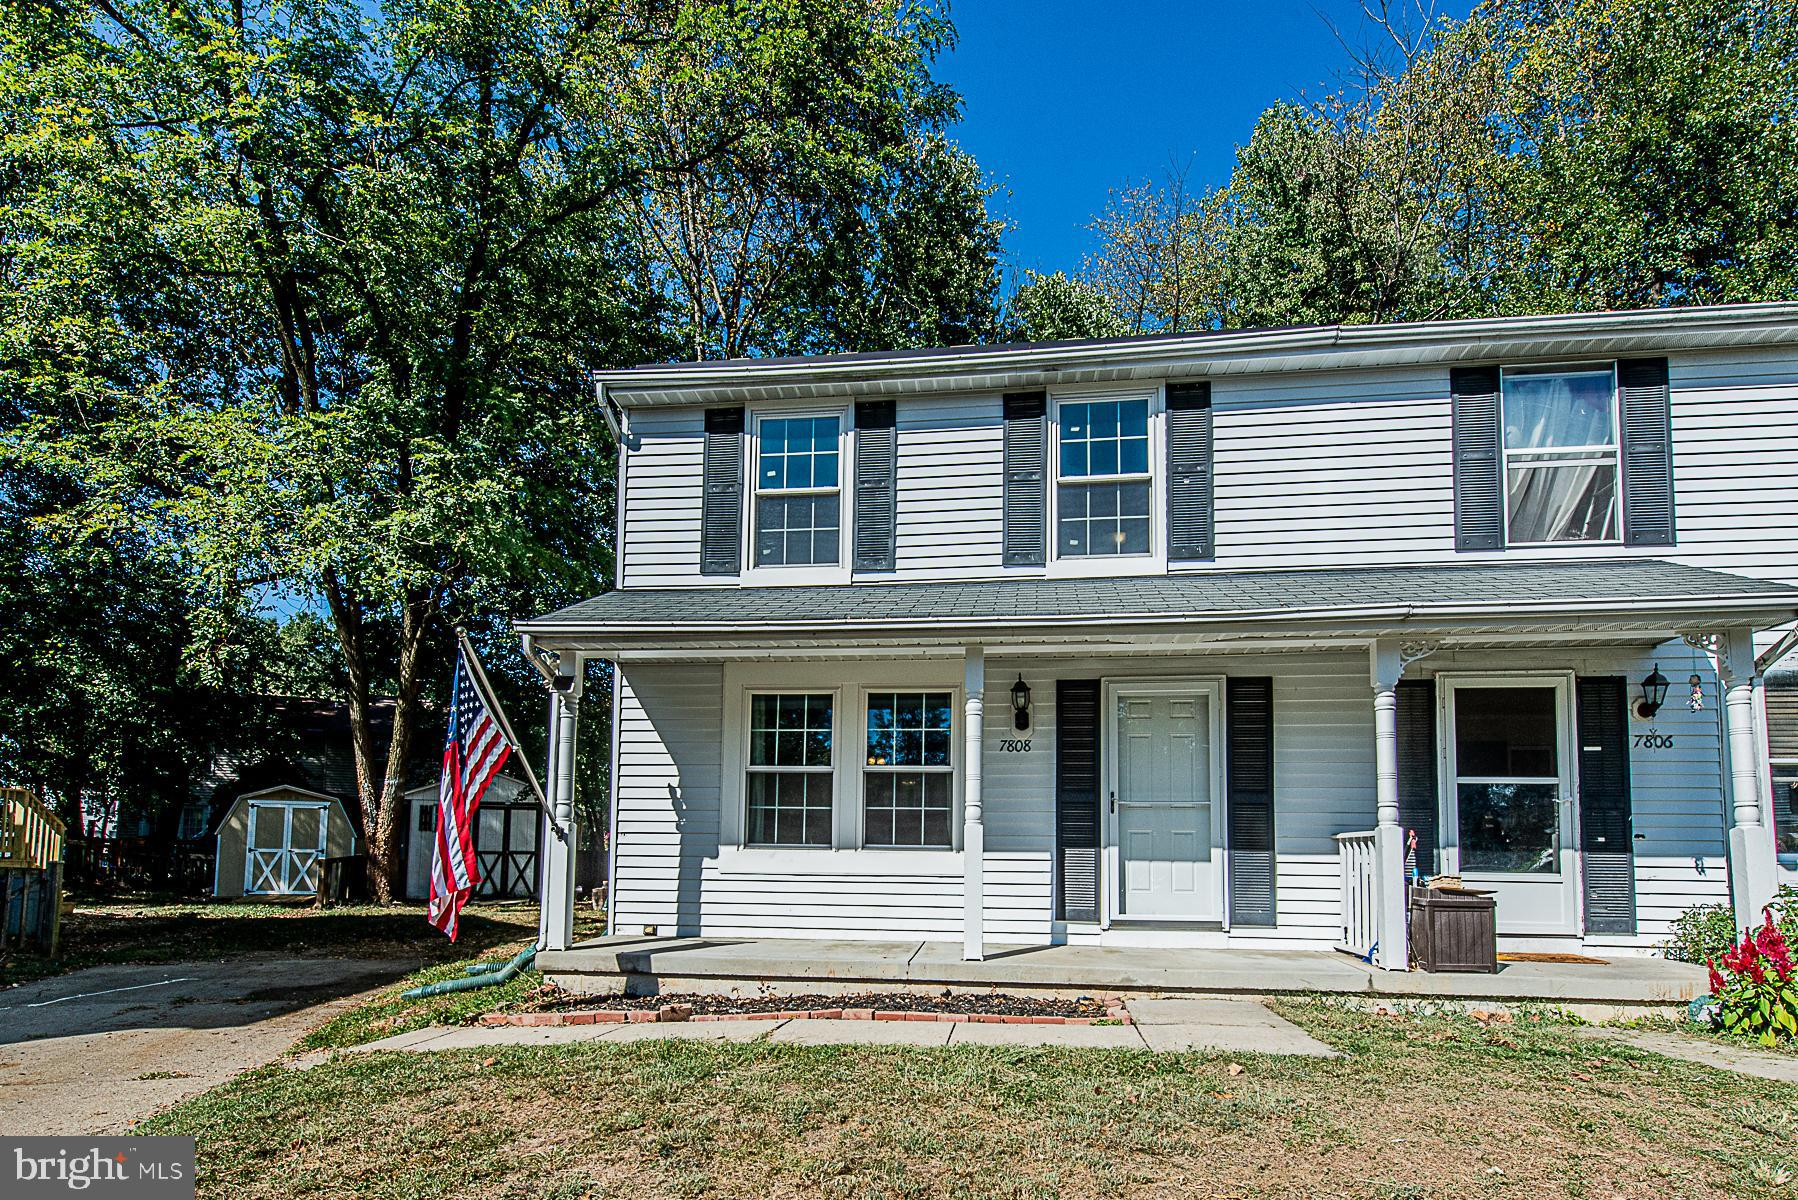 Excellent Howard County value! This updated home sits on a private lot backing to trees, convenientl